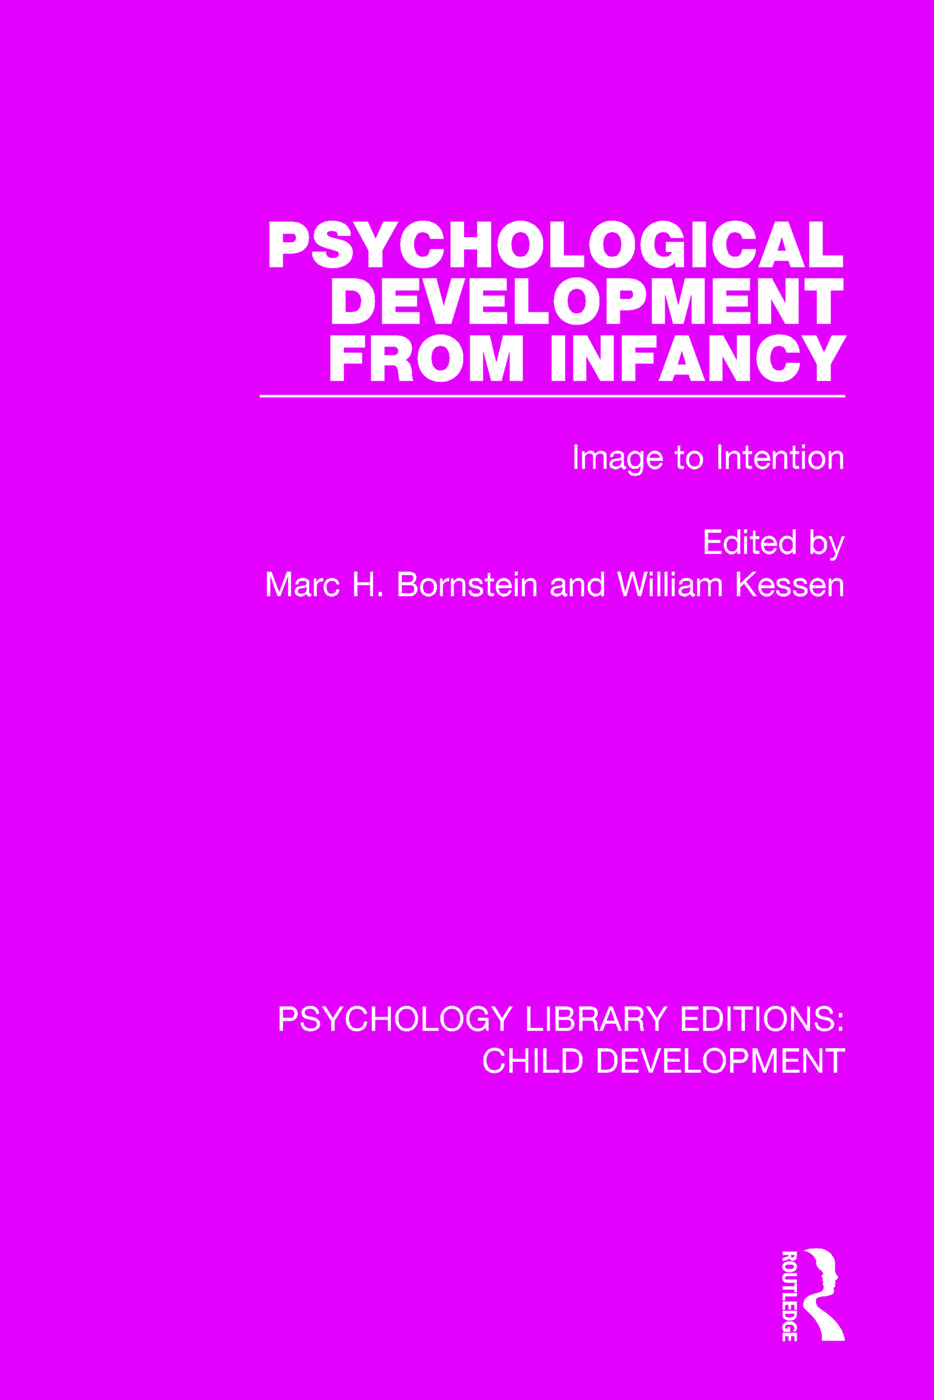 Psychological Development From Infancy: Image to Intention book cover